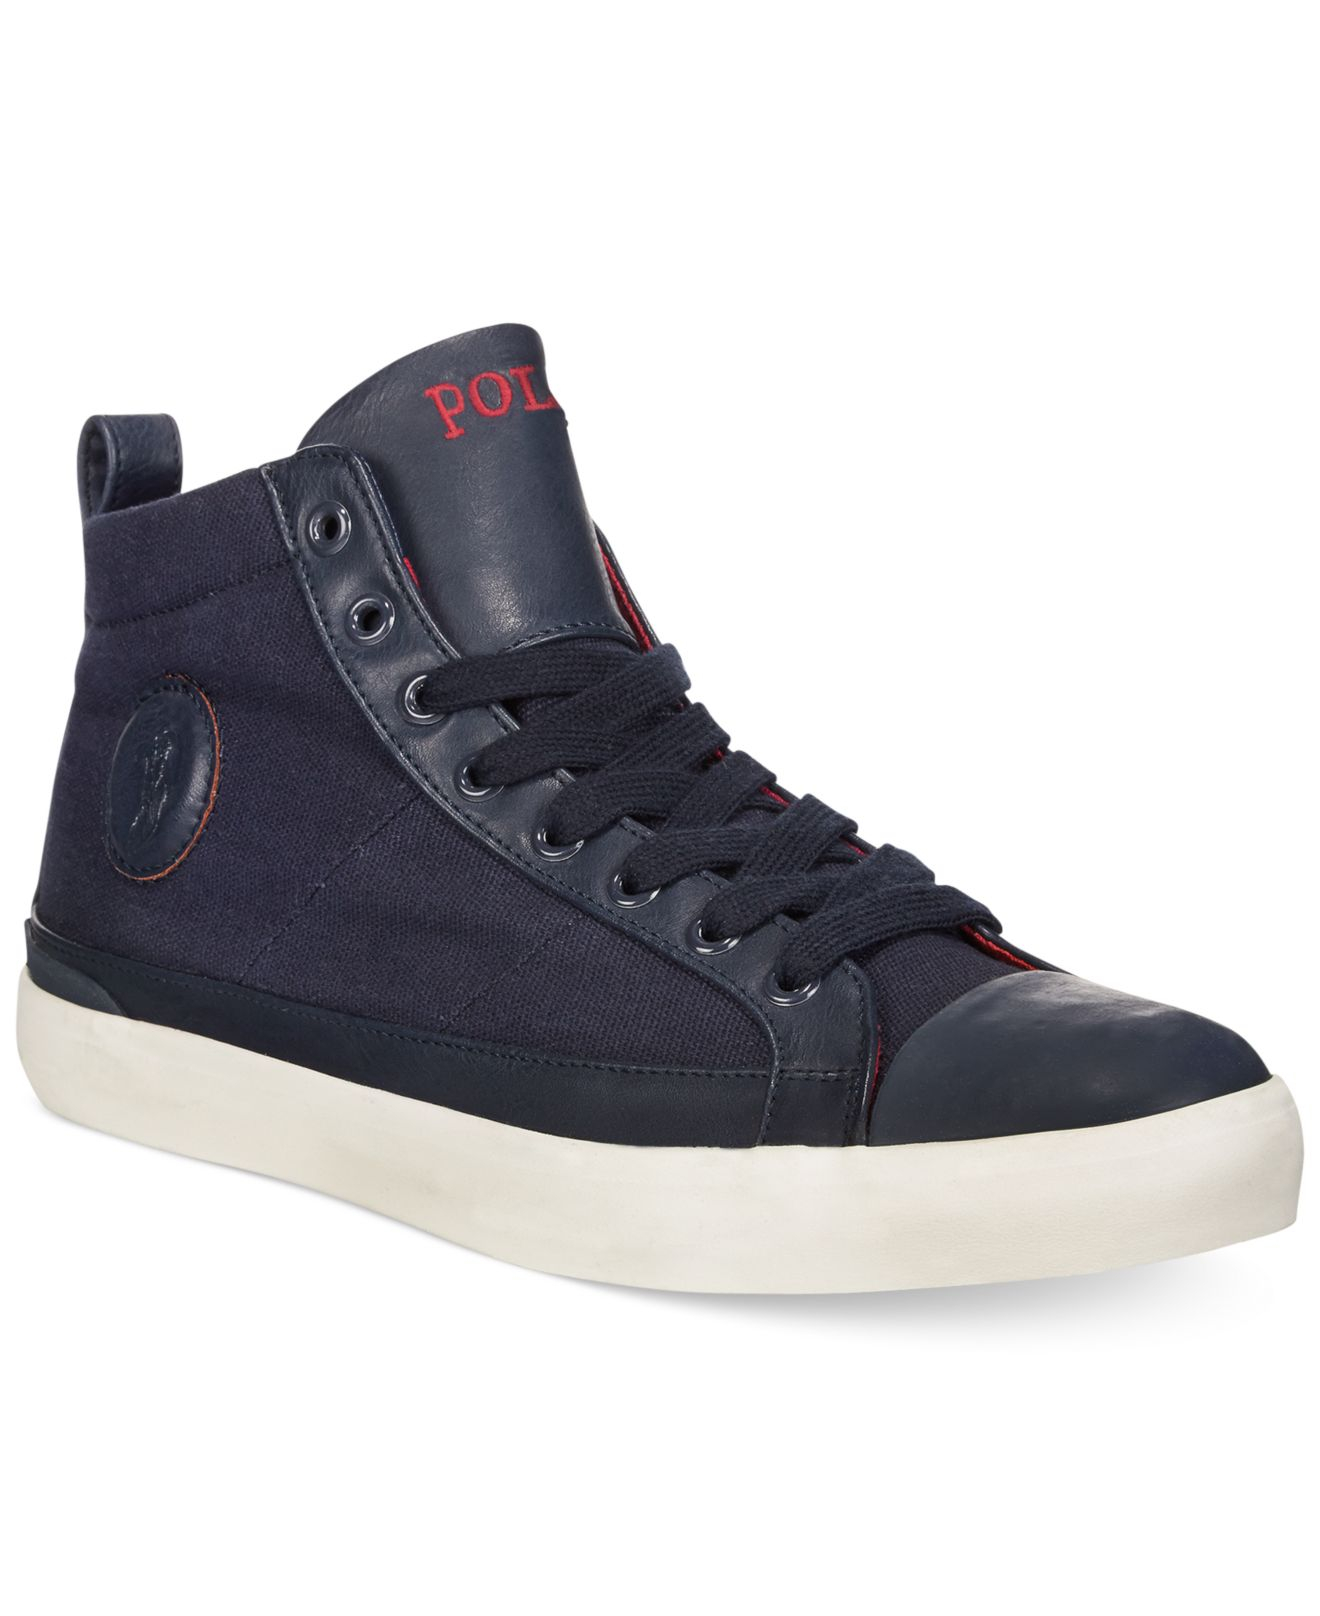 polo ralph lauren clarke canvas sneakers in blue for men lyst. Black Bedroom Furniture Sets. Home Design Ideas